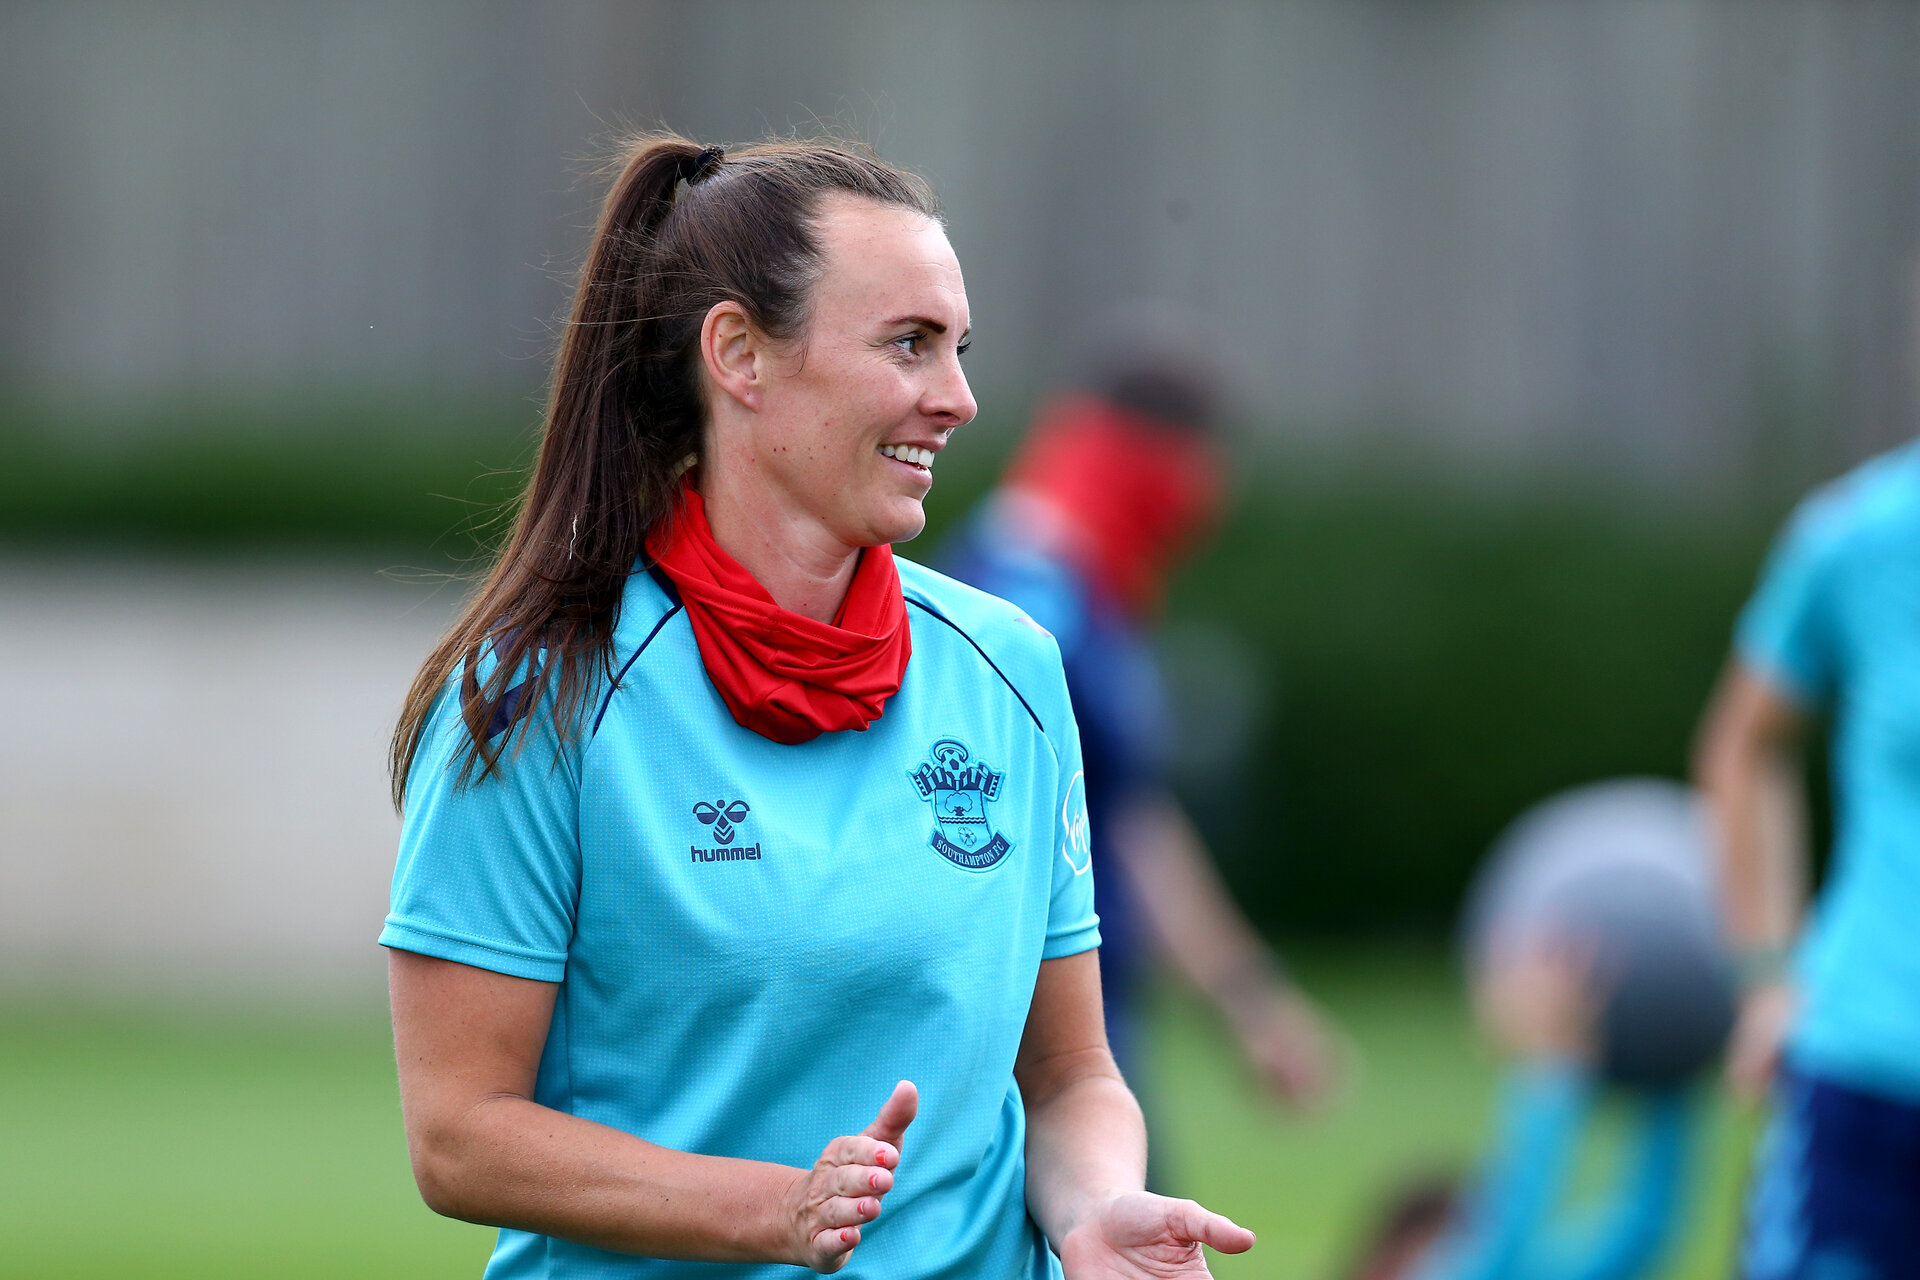 SOUTHAMPTON, ENGLAND - JULY 15: Leeta Rutherford during Southampton Women's per-season training session at Staplewood Complex on July 15, 2021 in Southampton, England. (Photo by Isabelle Field/Southampton FC via Getty Images)